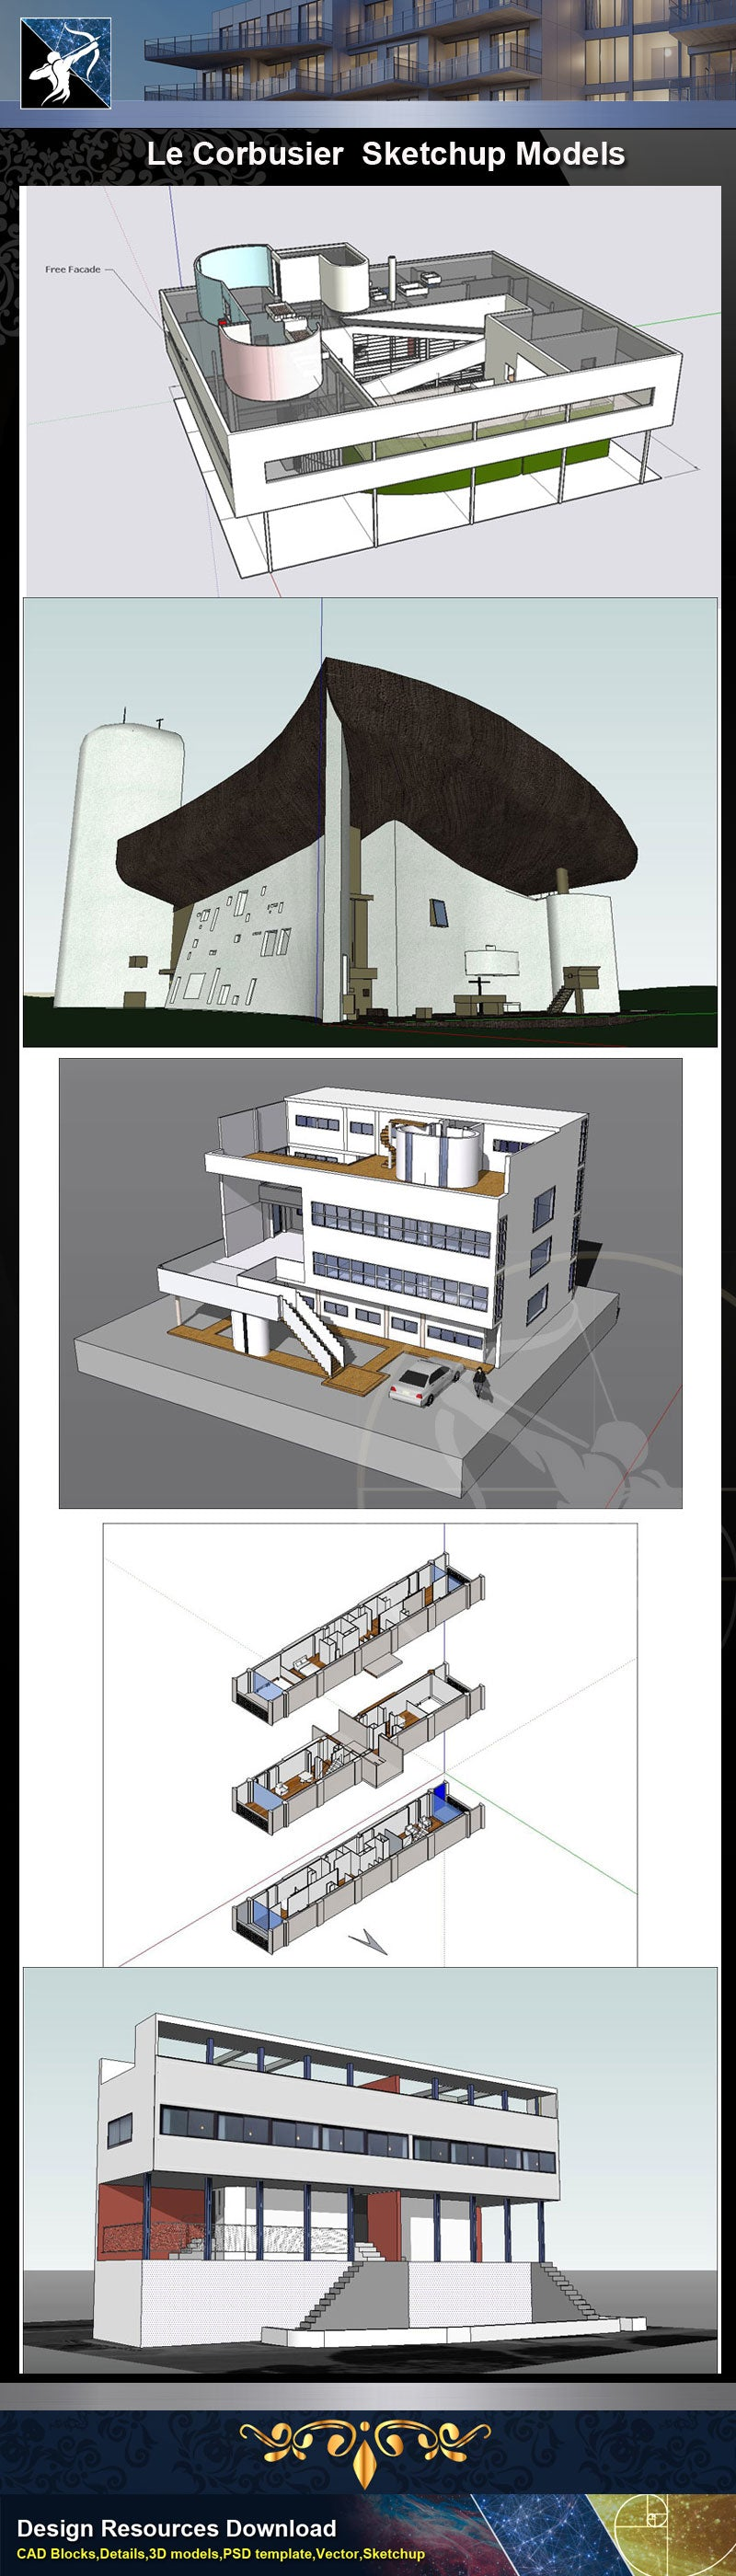 Famous Architecture 24 Kinds Of Le Corbusier Sketchup 3D Models